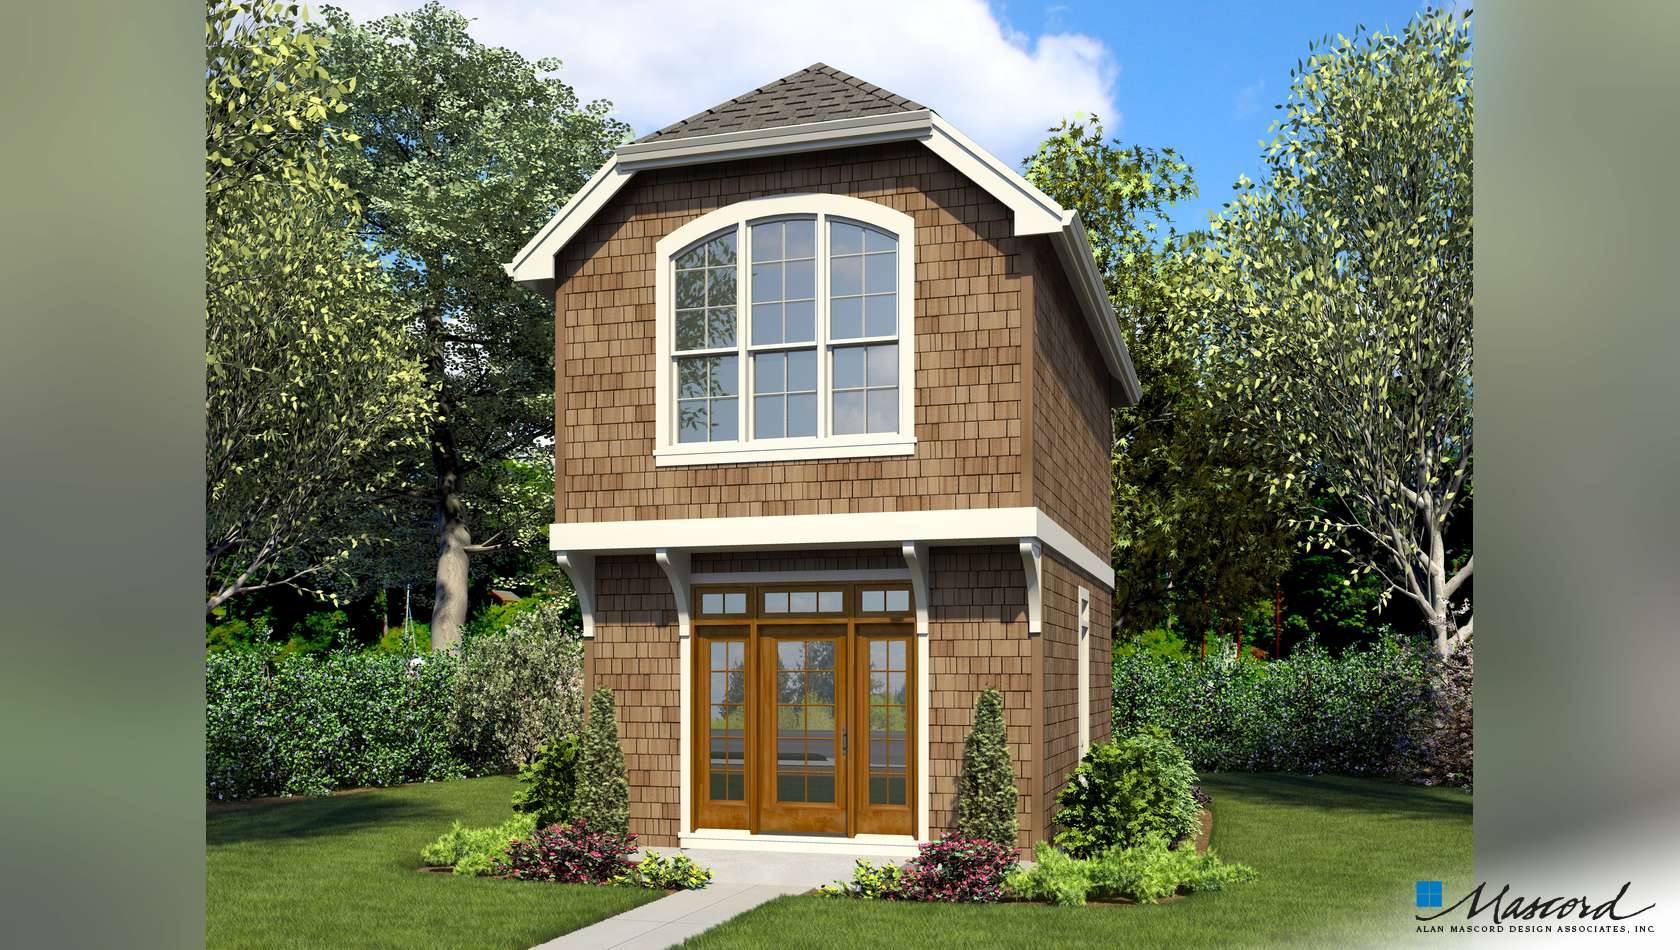 Main image for house plan 21150: The Waynesville